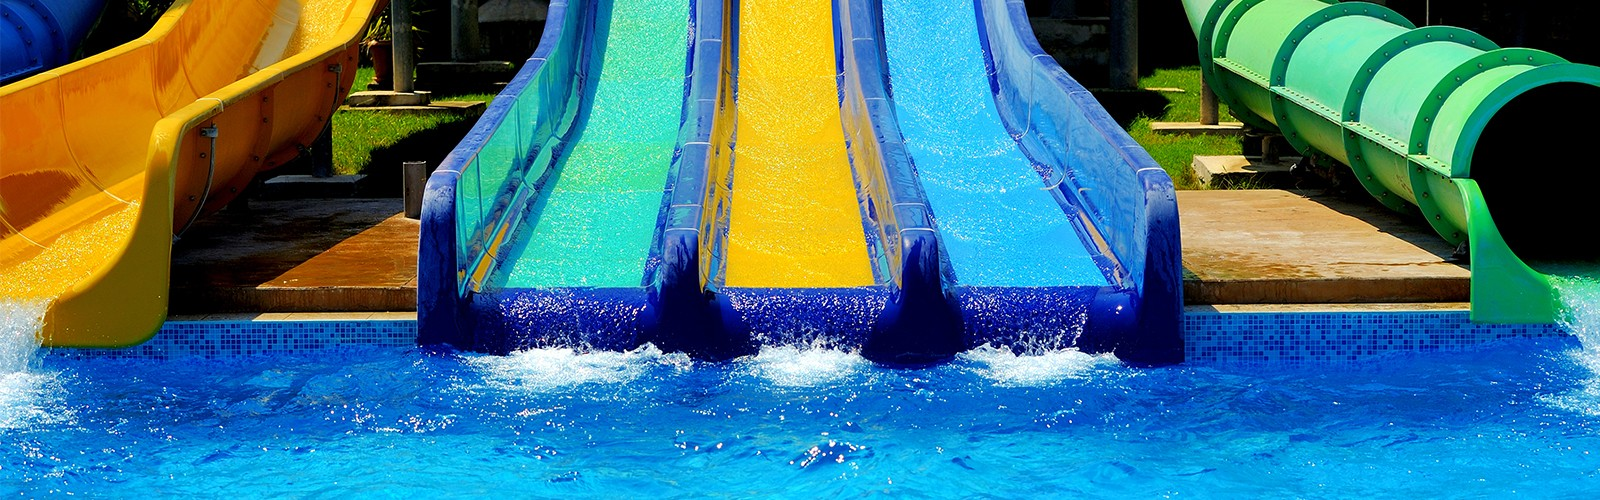 Awesome waterparks - Luxury Family Holidays - Travel Blog